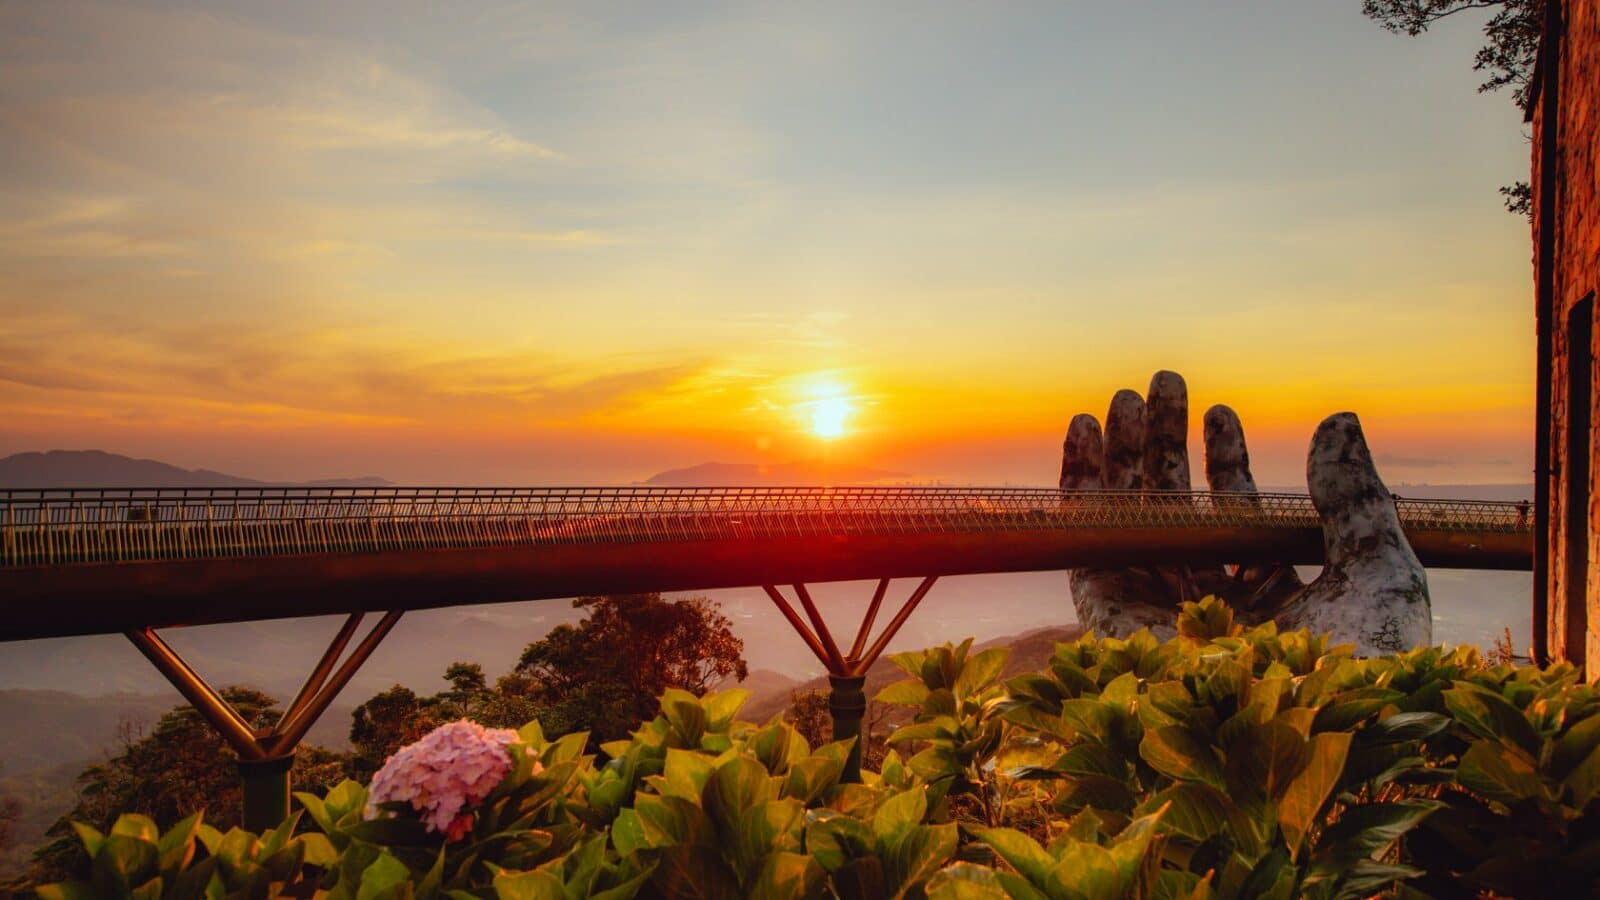 Image of the sun setting behind the golden bridge at sunworld Ba na hills in Da nang